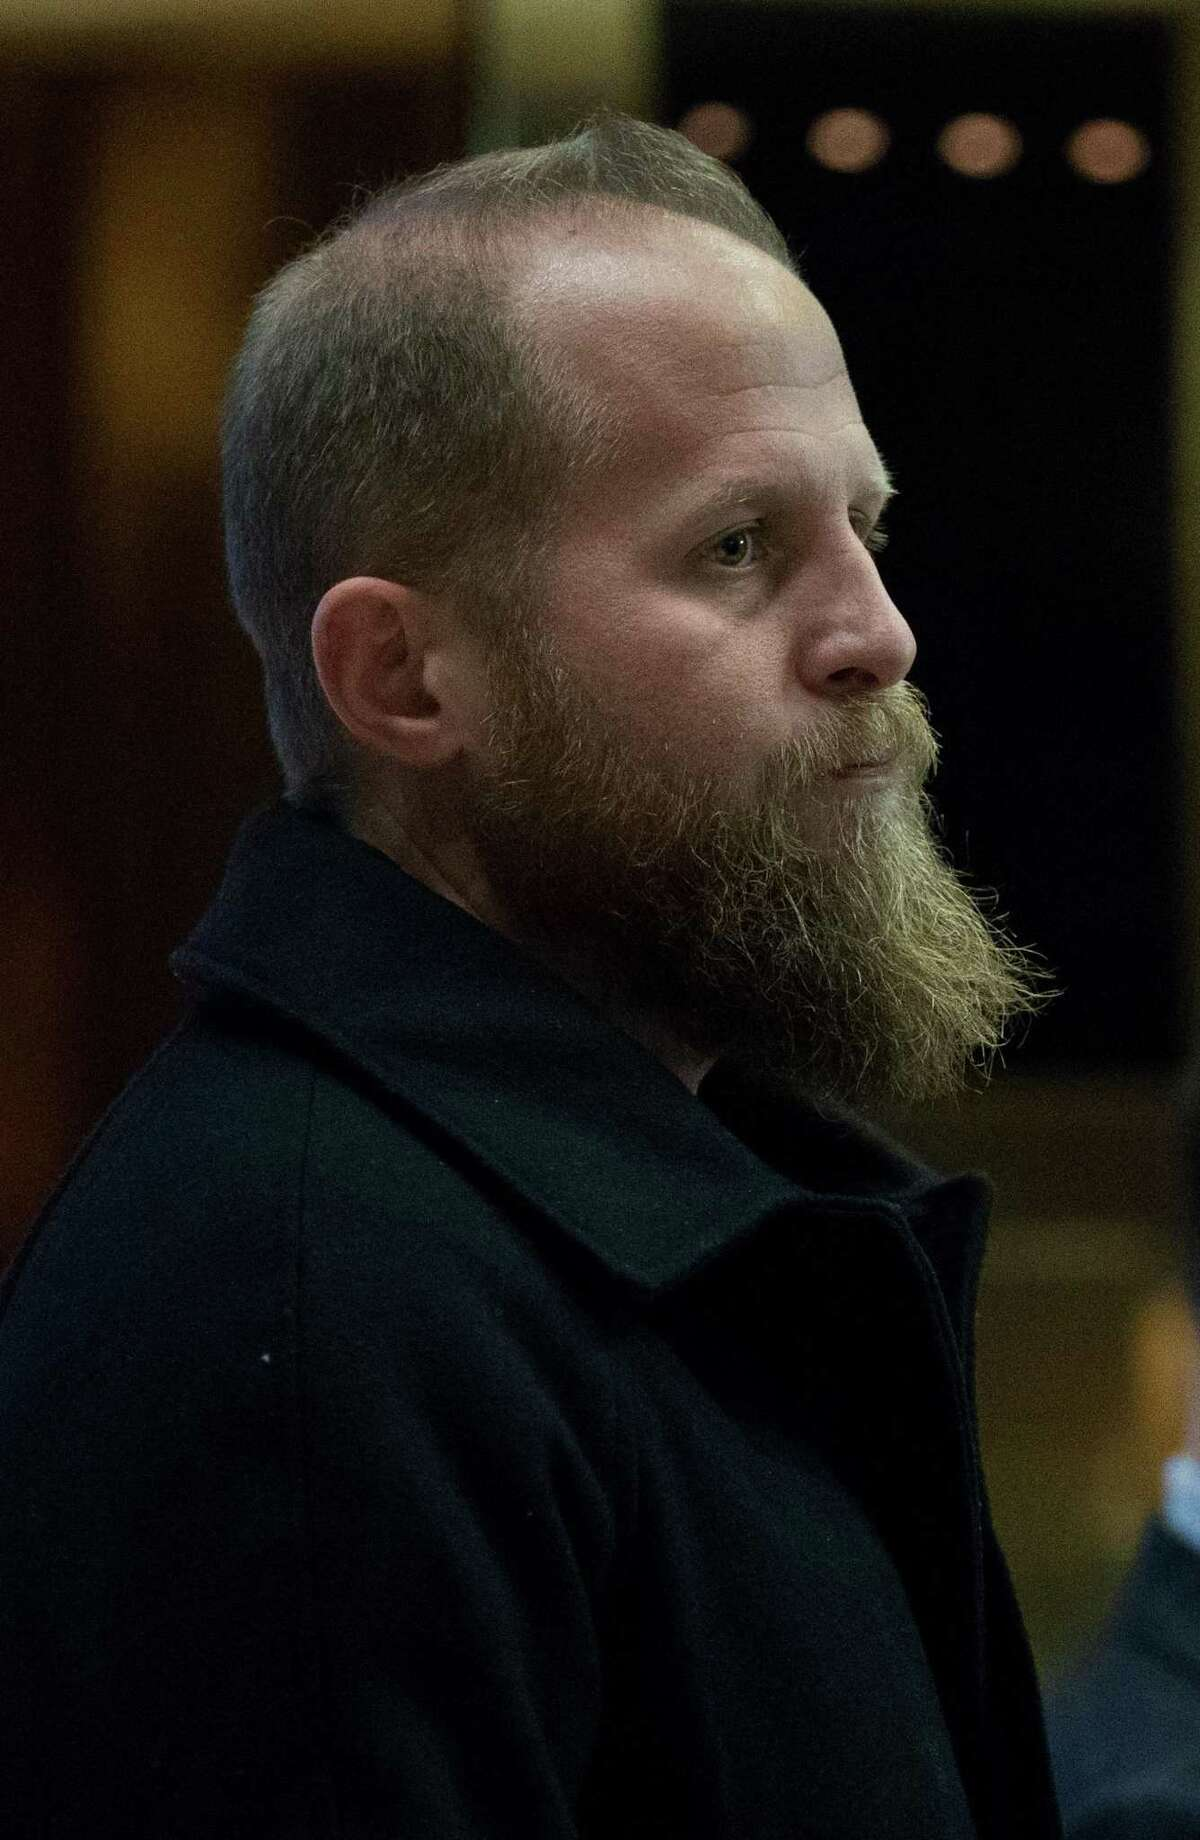 NEW YORK, NY - NOVEMBER 15: Brad Parscale, digital director for the Trump campaign, arrives at Trump Tower, November 15, 2016 in New York City. President-elect Trump is in the process of choosing his presidential cabinet as he transitions from a candidate to the president-elect. (Photo by Drew Angerer/Getty Images)